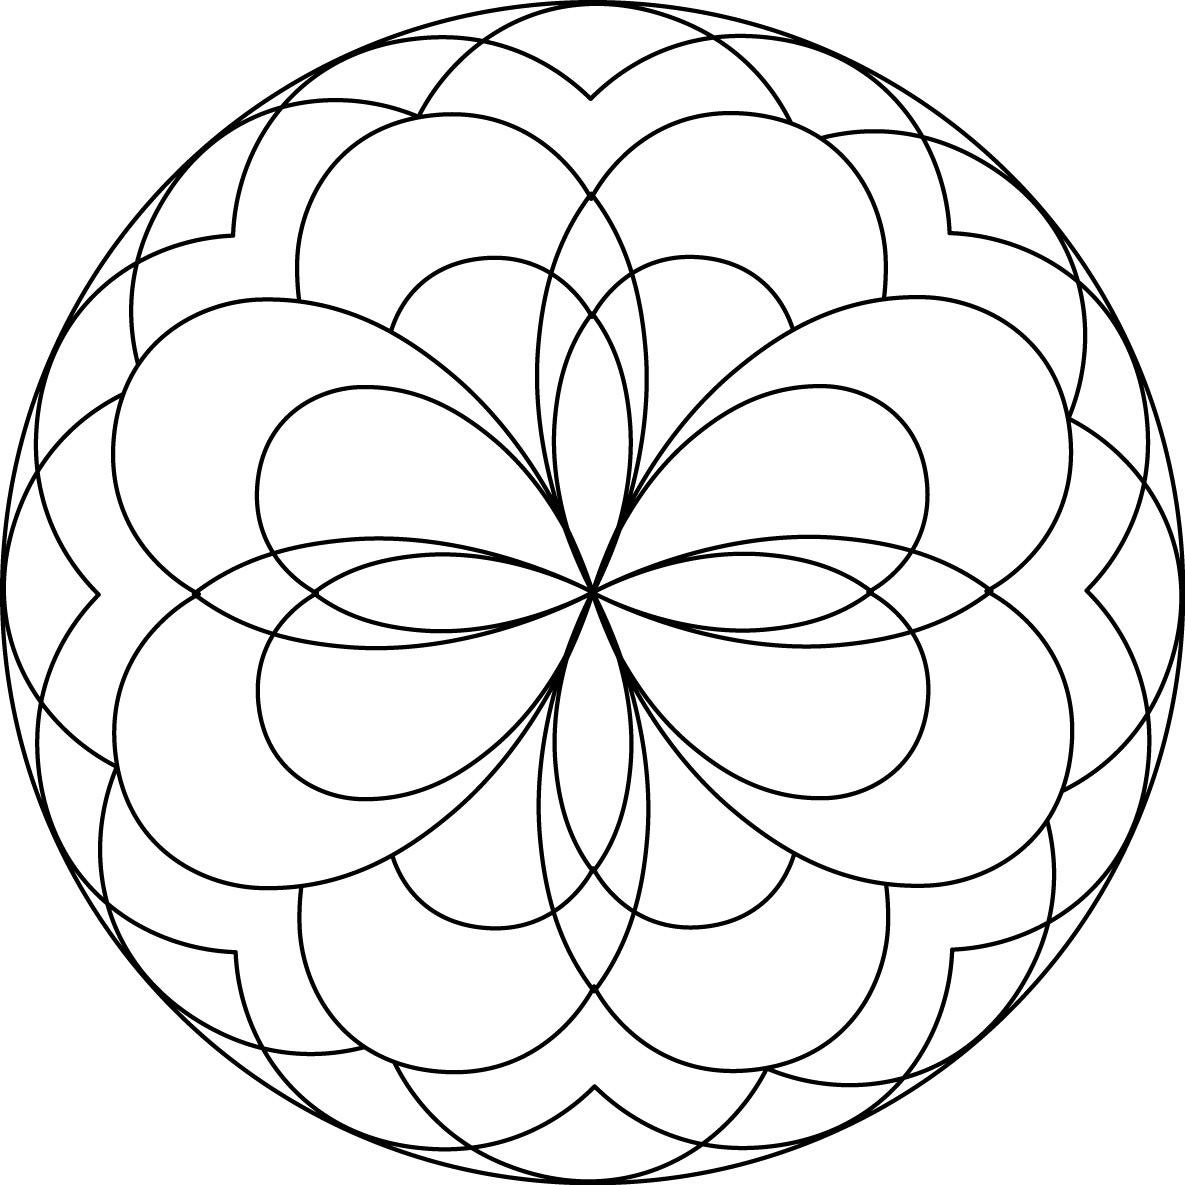 simple mandala coloring page simple mandala coloring pages download and print for free coloring simple mandala page